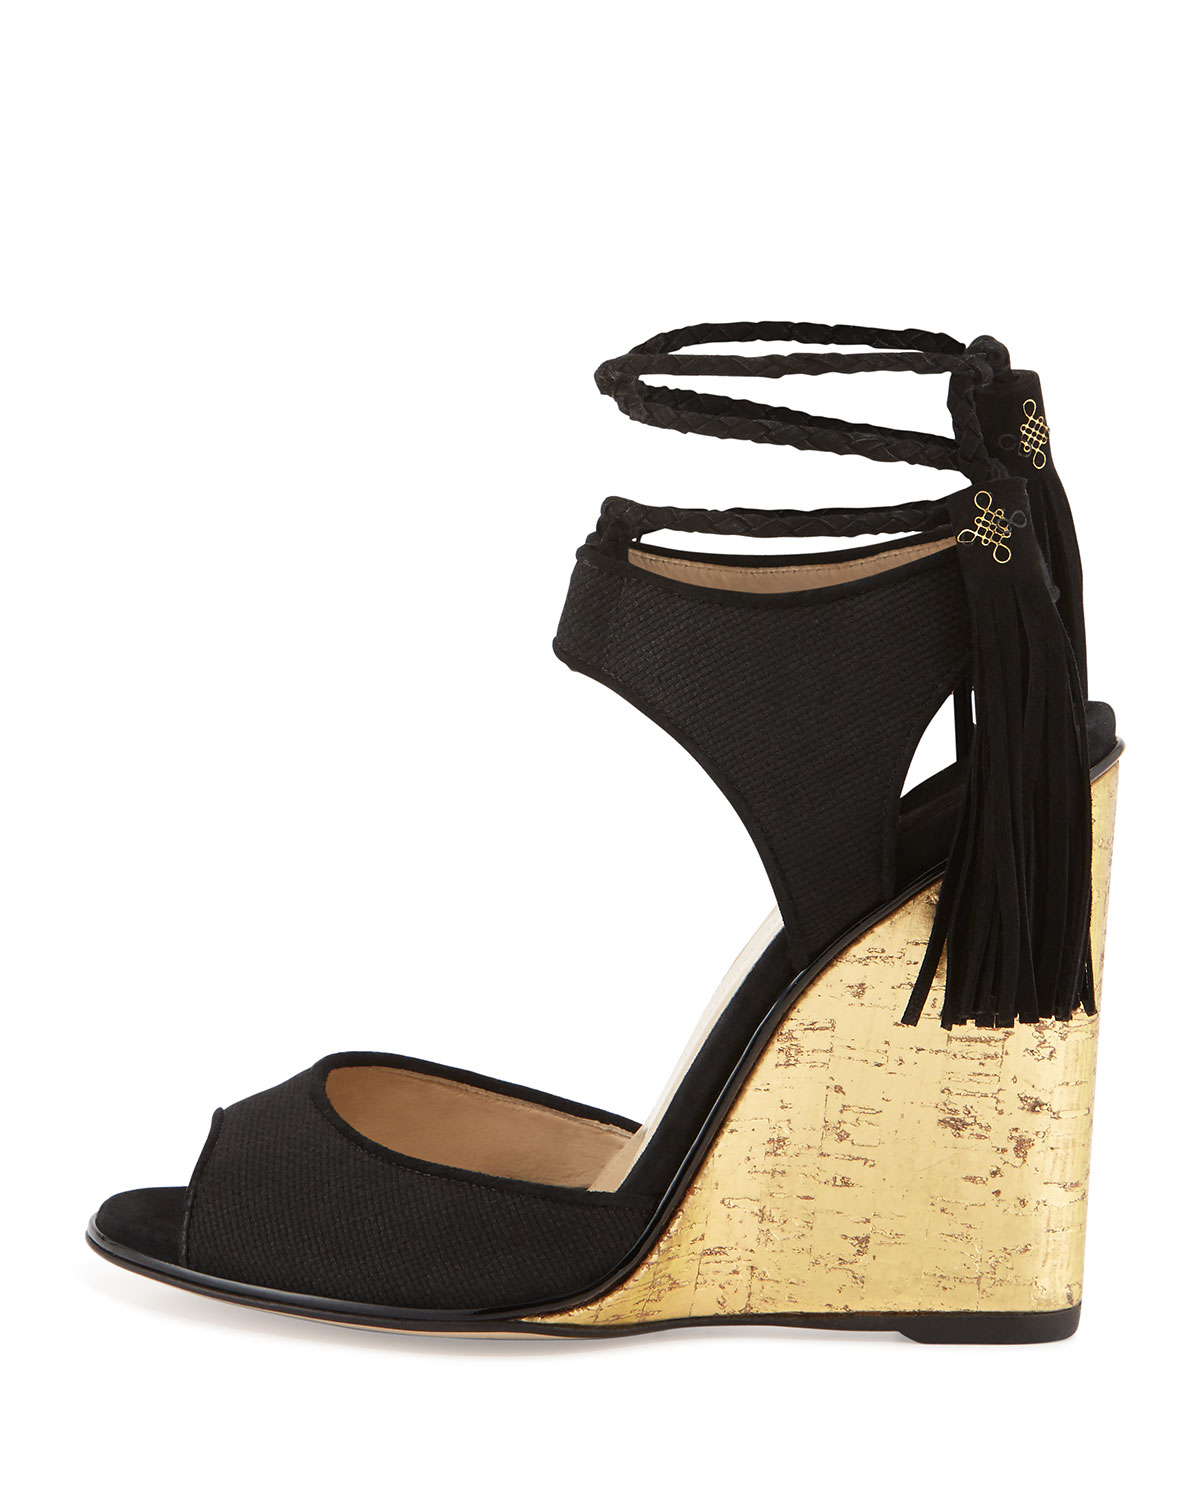 602eb328b33 Lyst - Paul Andrew Tianjin Wedge Sandals in Black